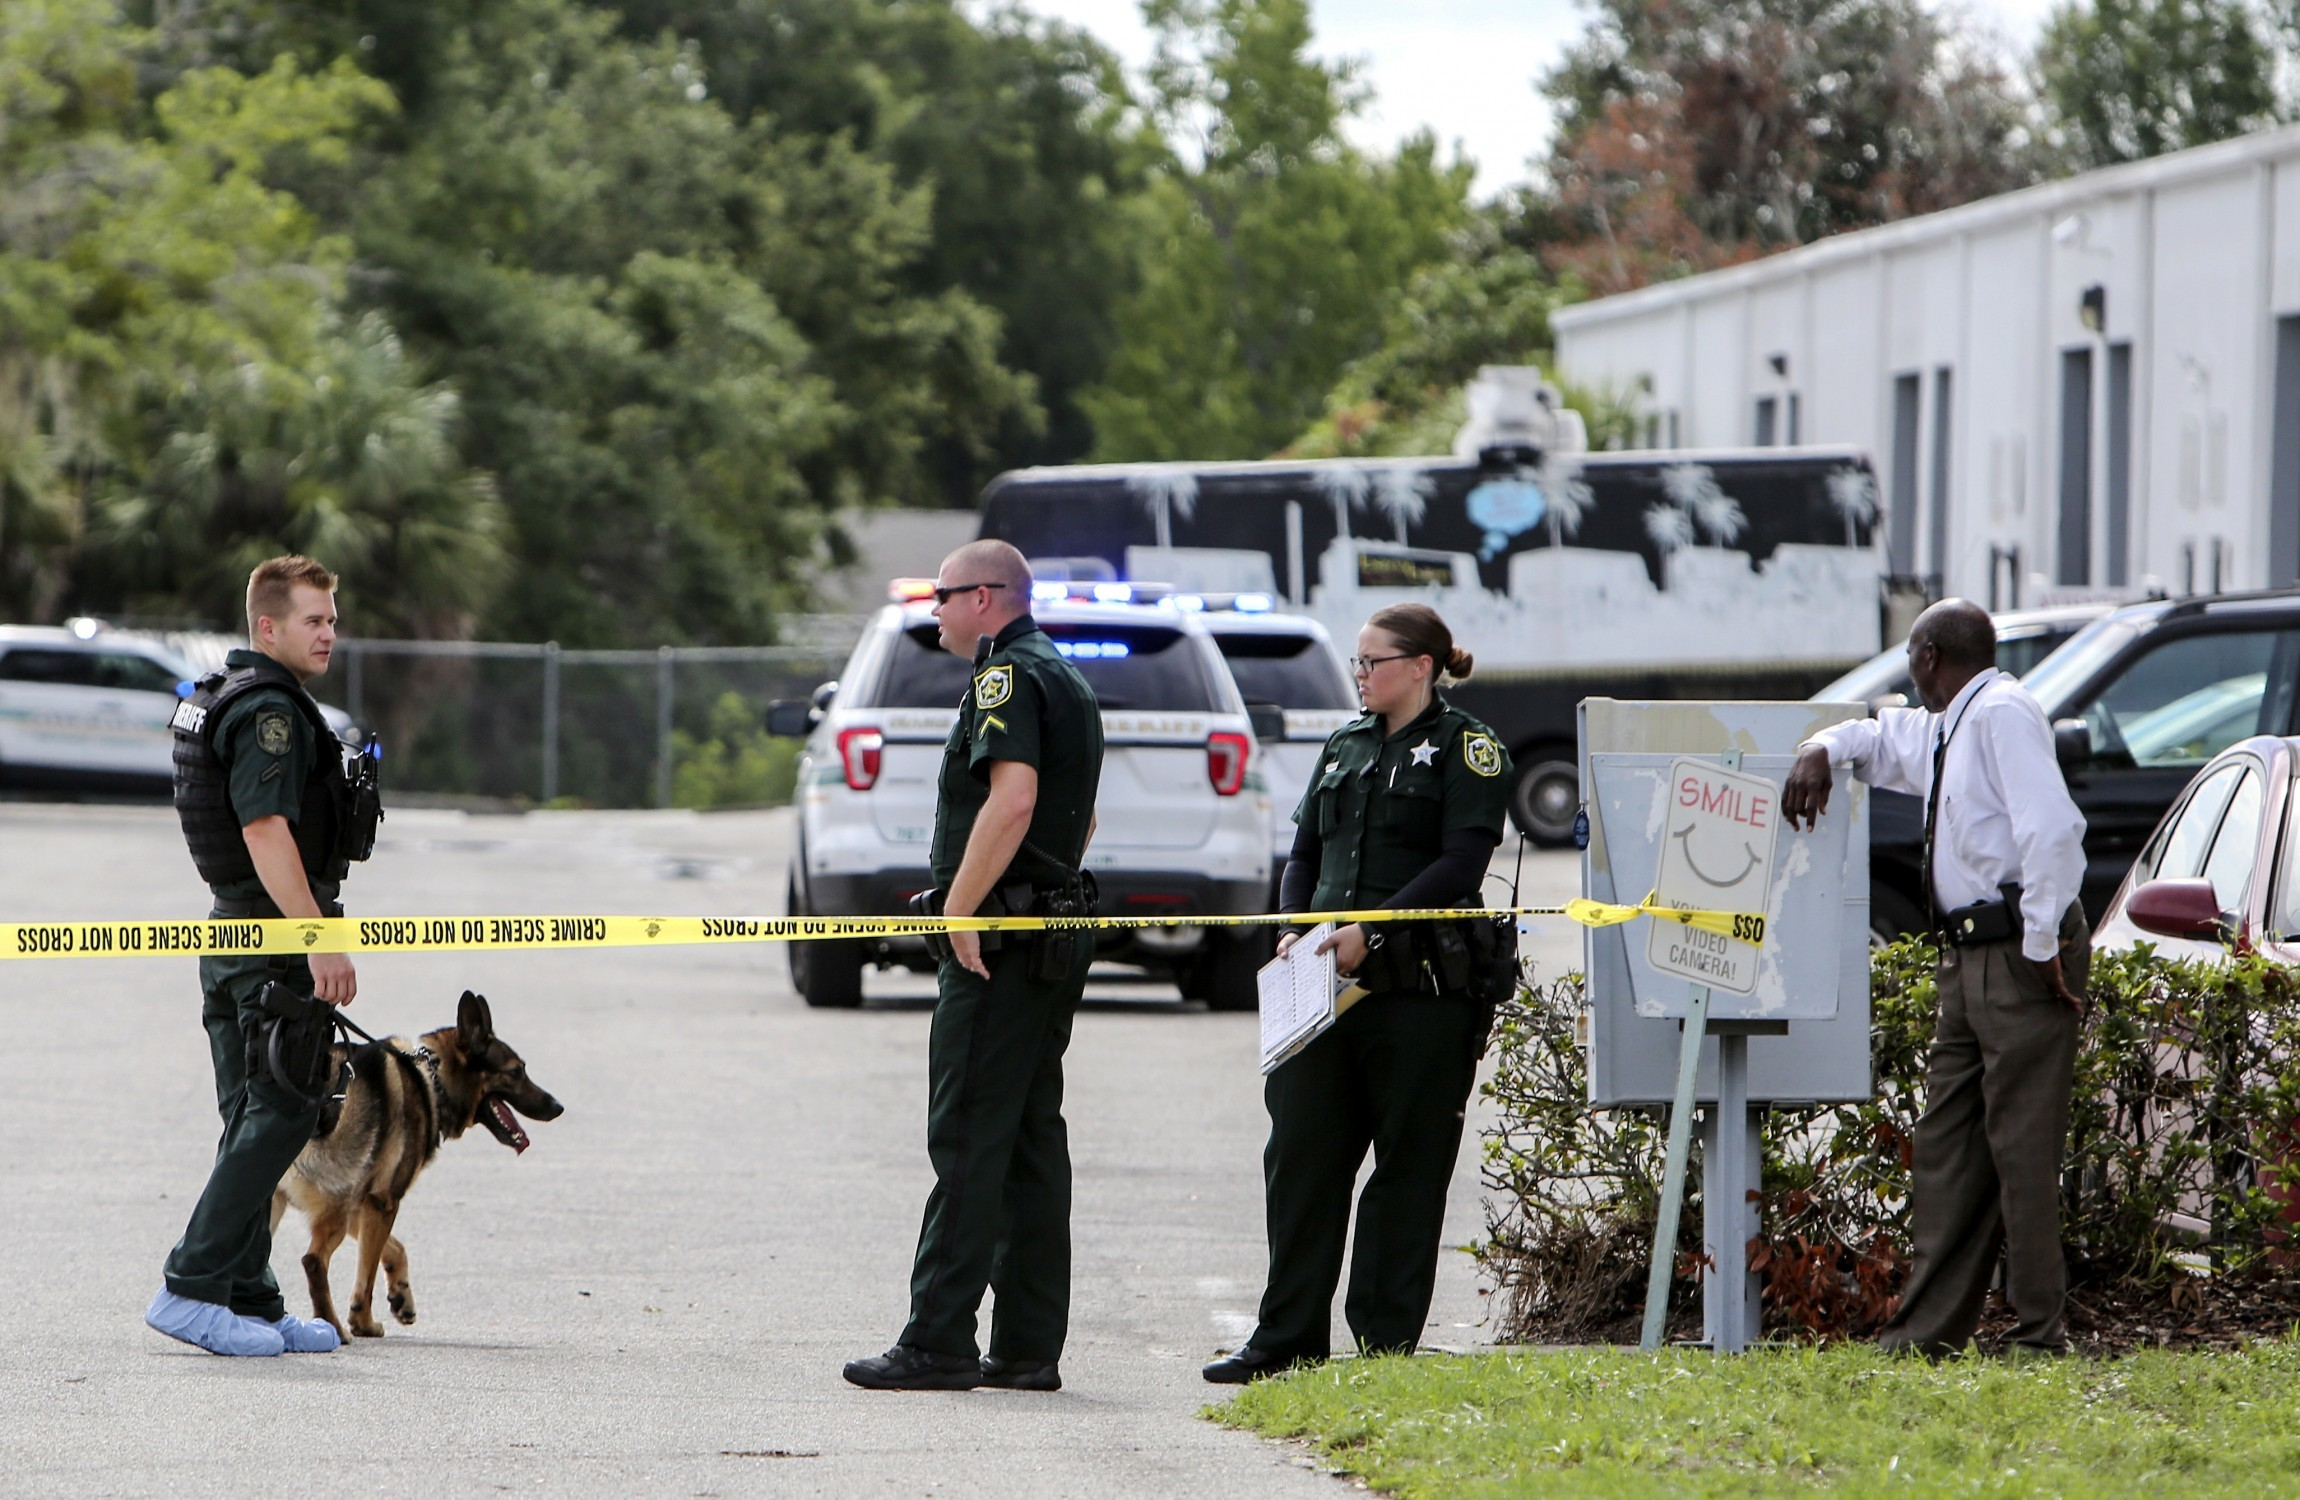 Police investigating multiple fatalities in Orlando shooting